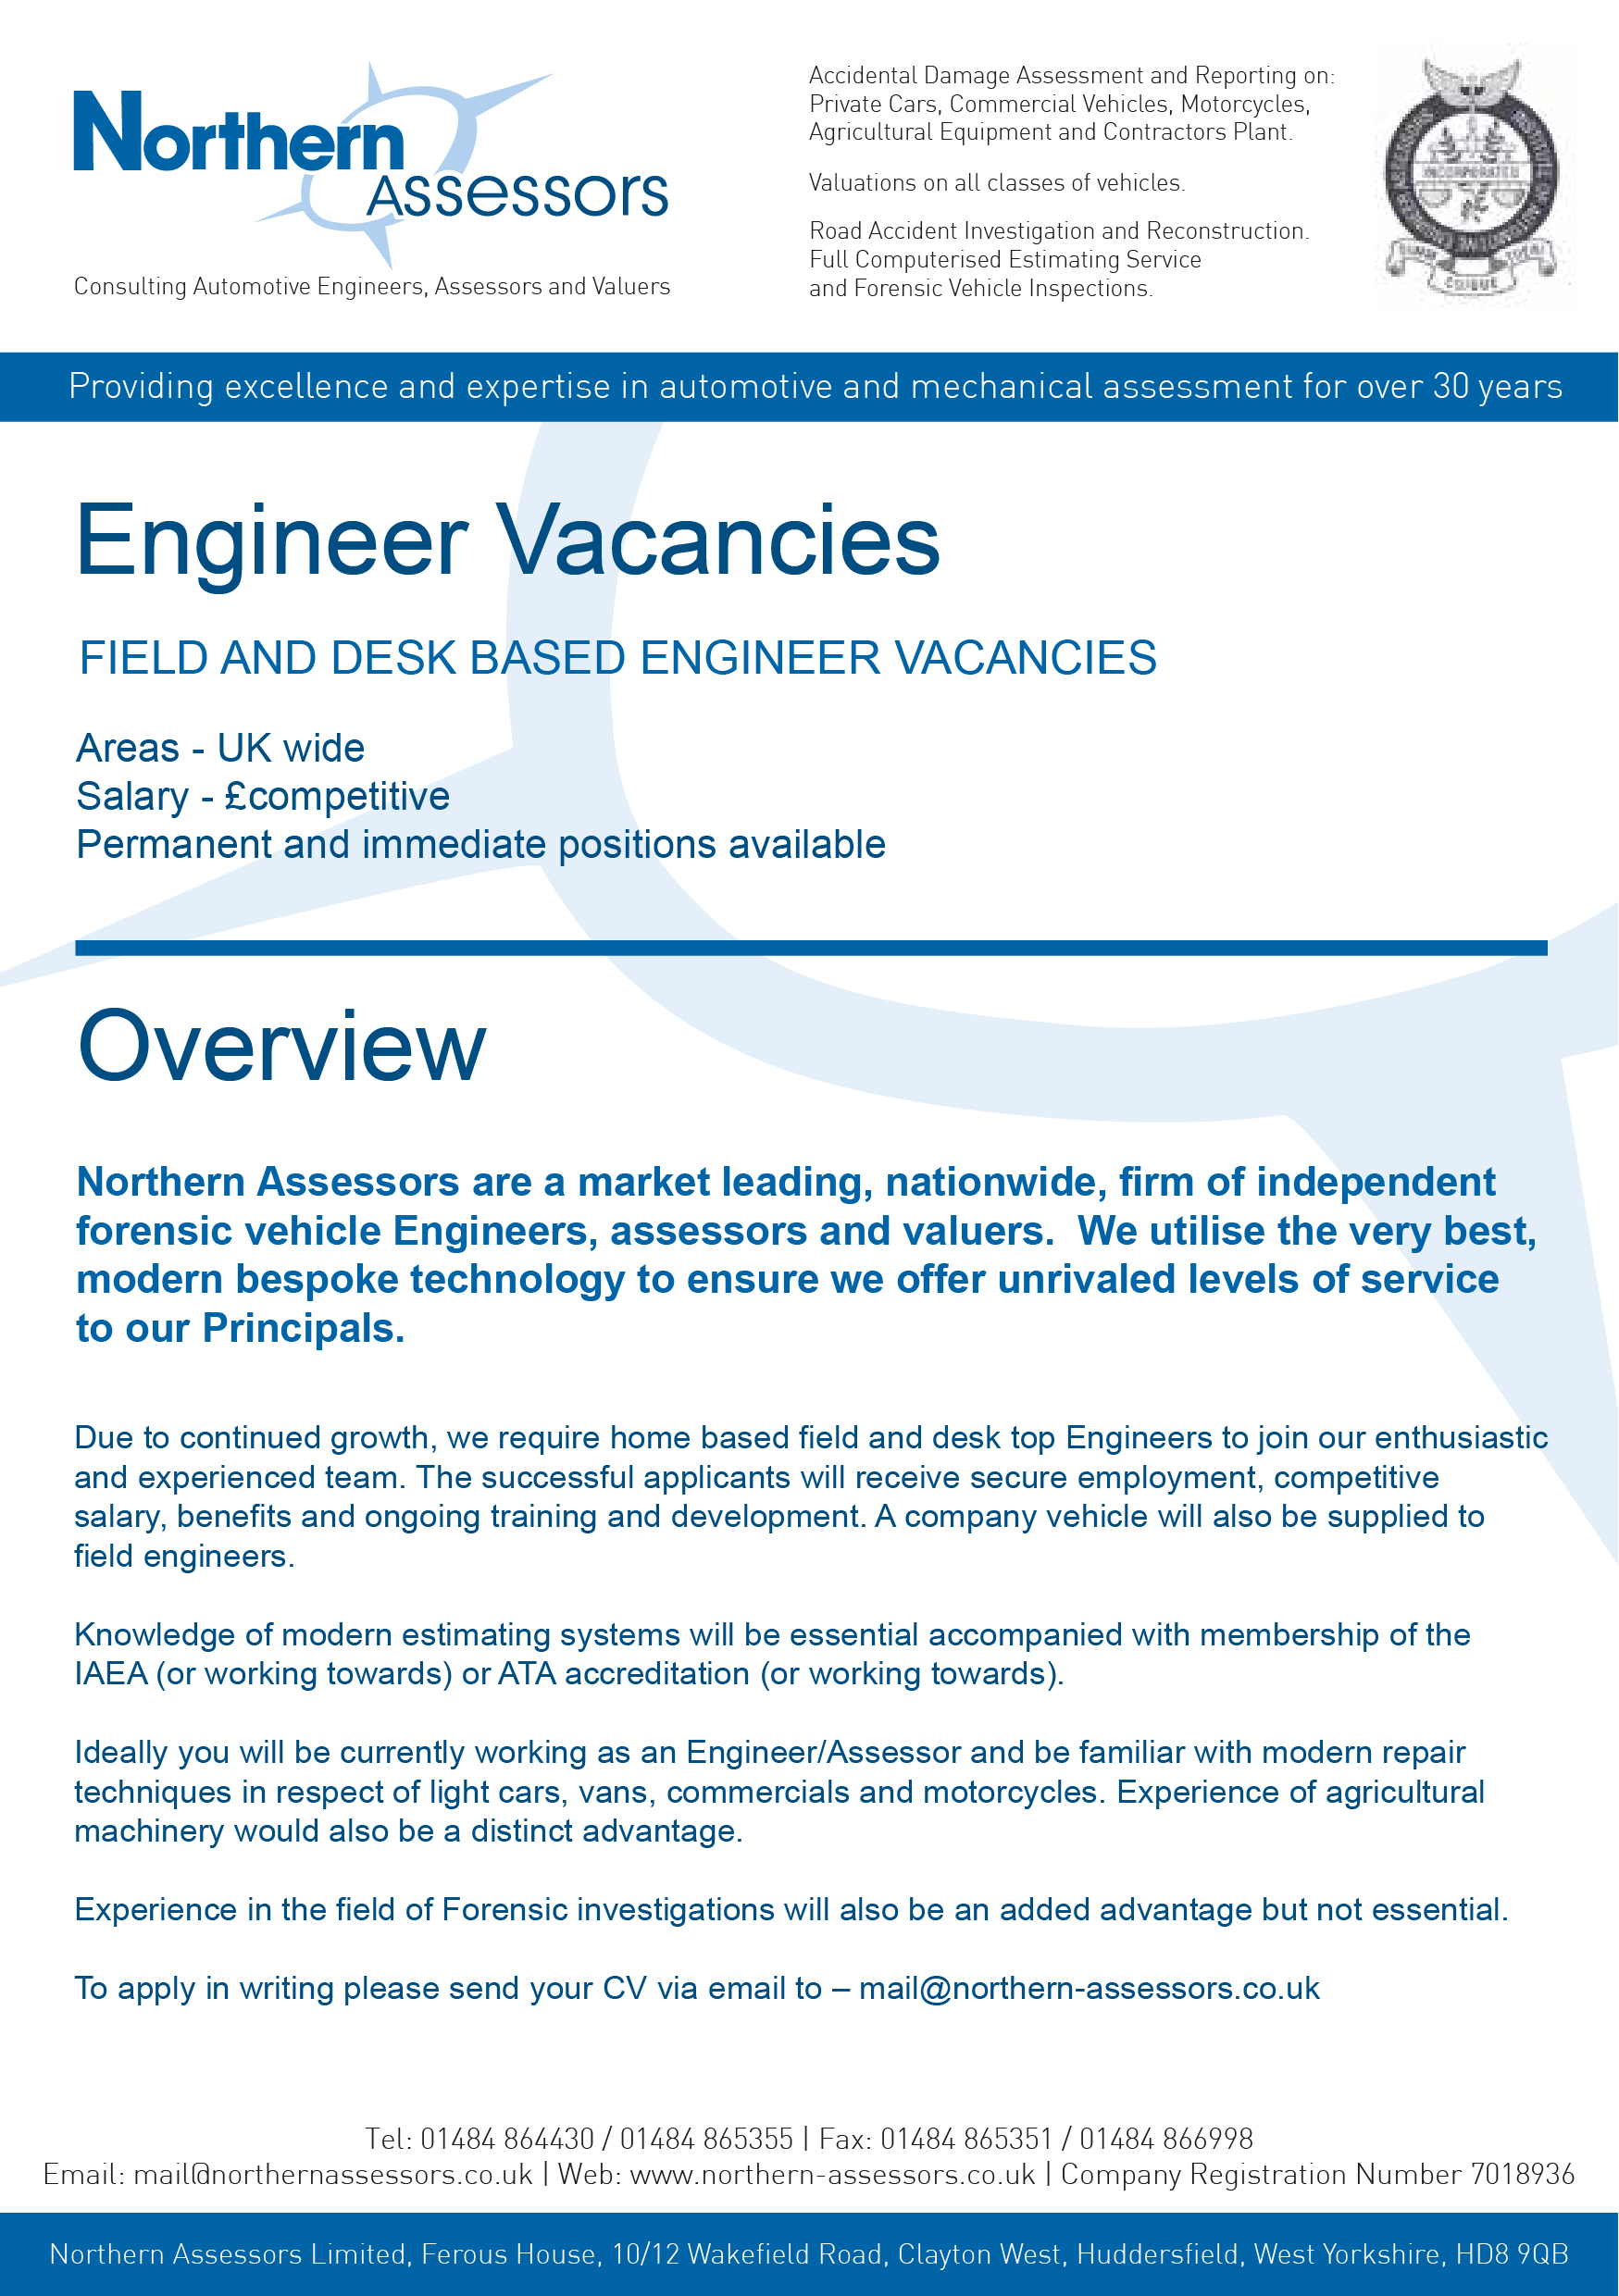 Engineer Vacancies Available